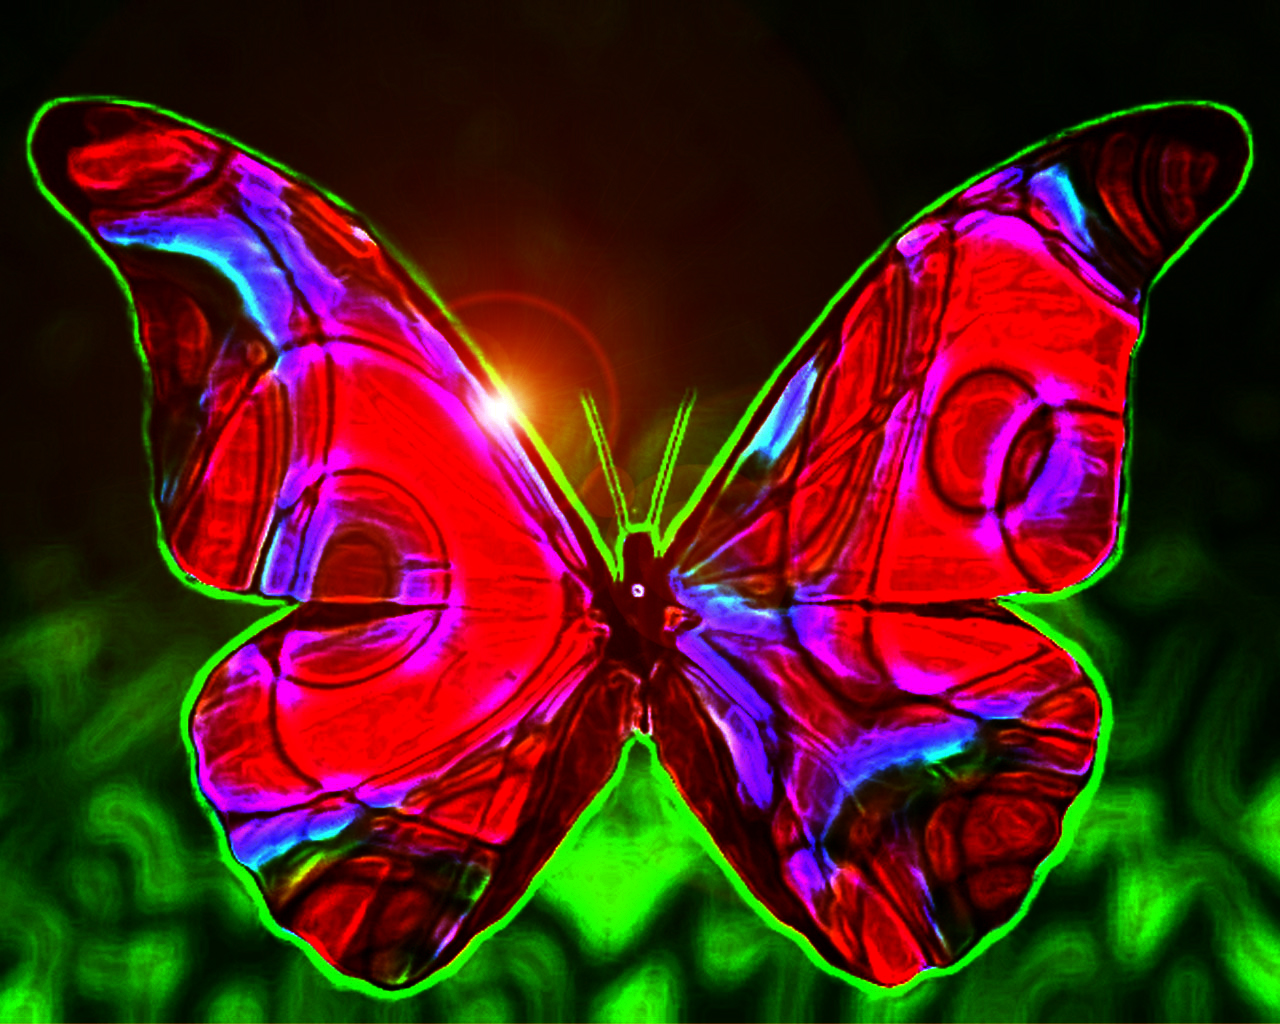 Butterfly Background Wallpapers on this Butterfly Background 1280x1024